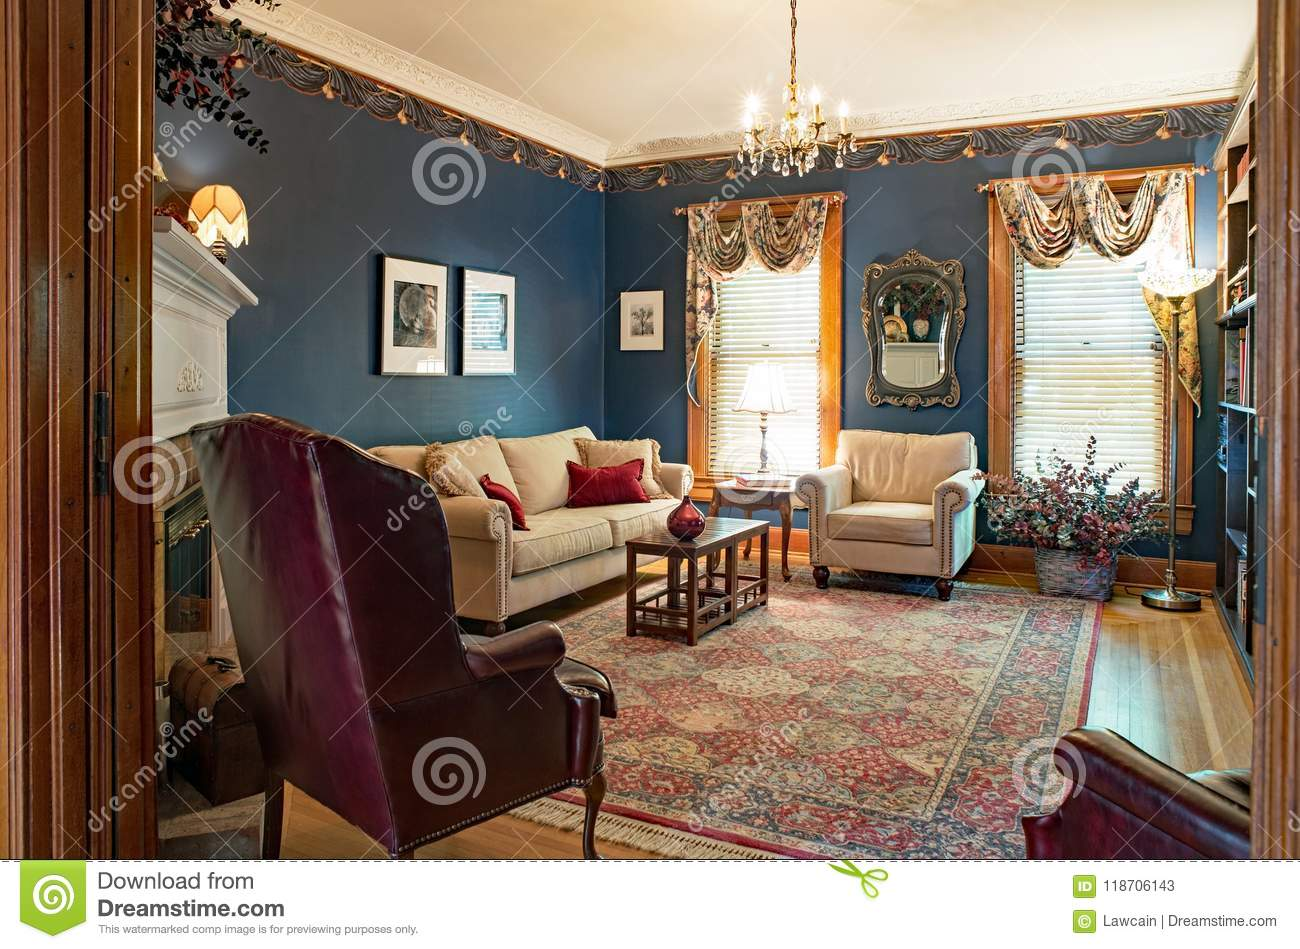 Dayton Ohio USA - June 10 2018 Ex≤ of Victorian living room with navy blue walls ten foot ceiling crystal chandelier and oriential area rug in one ... : victiorian living room - amorenlinea.org